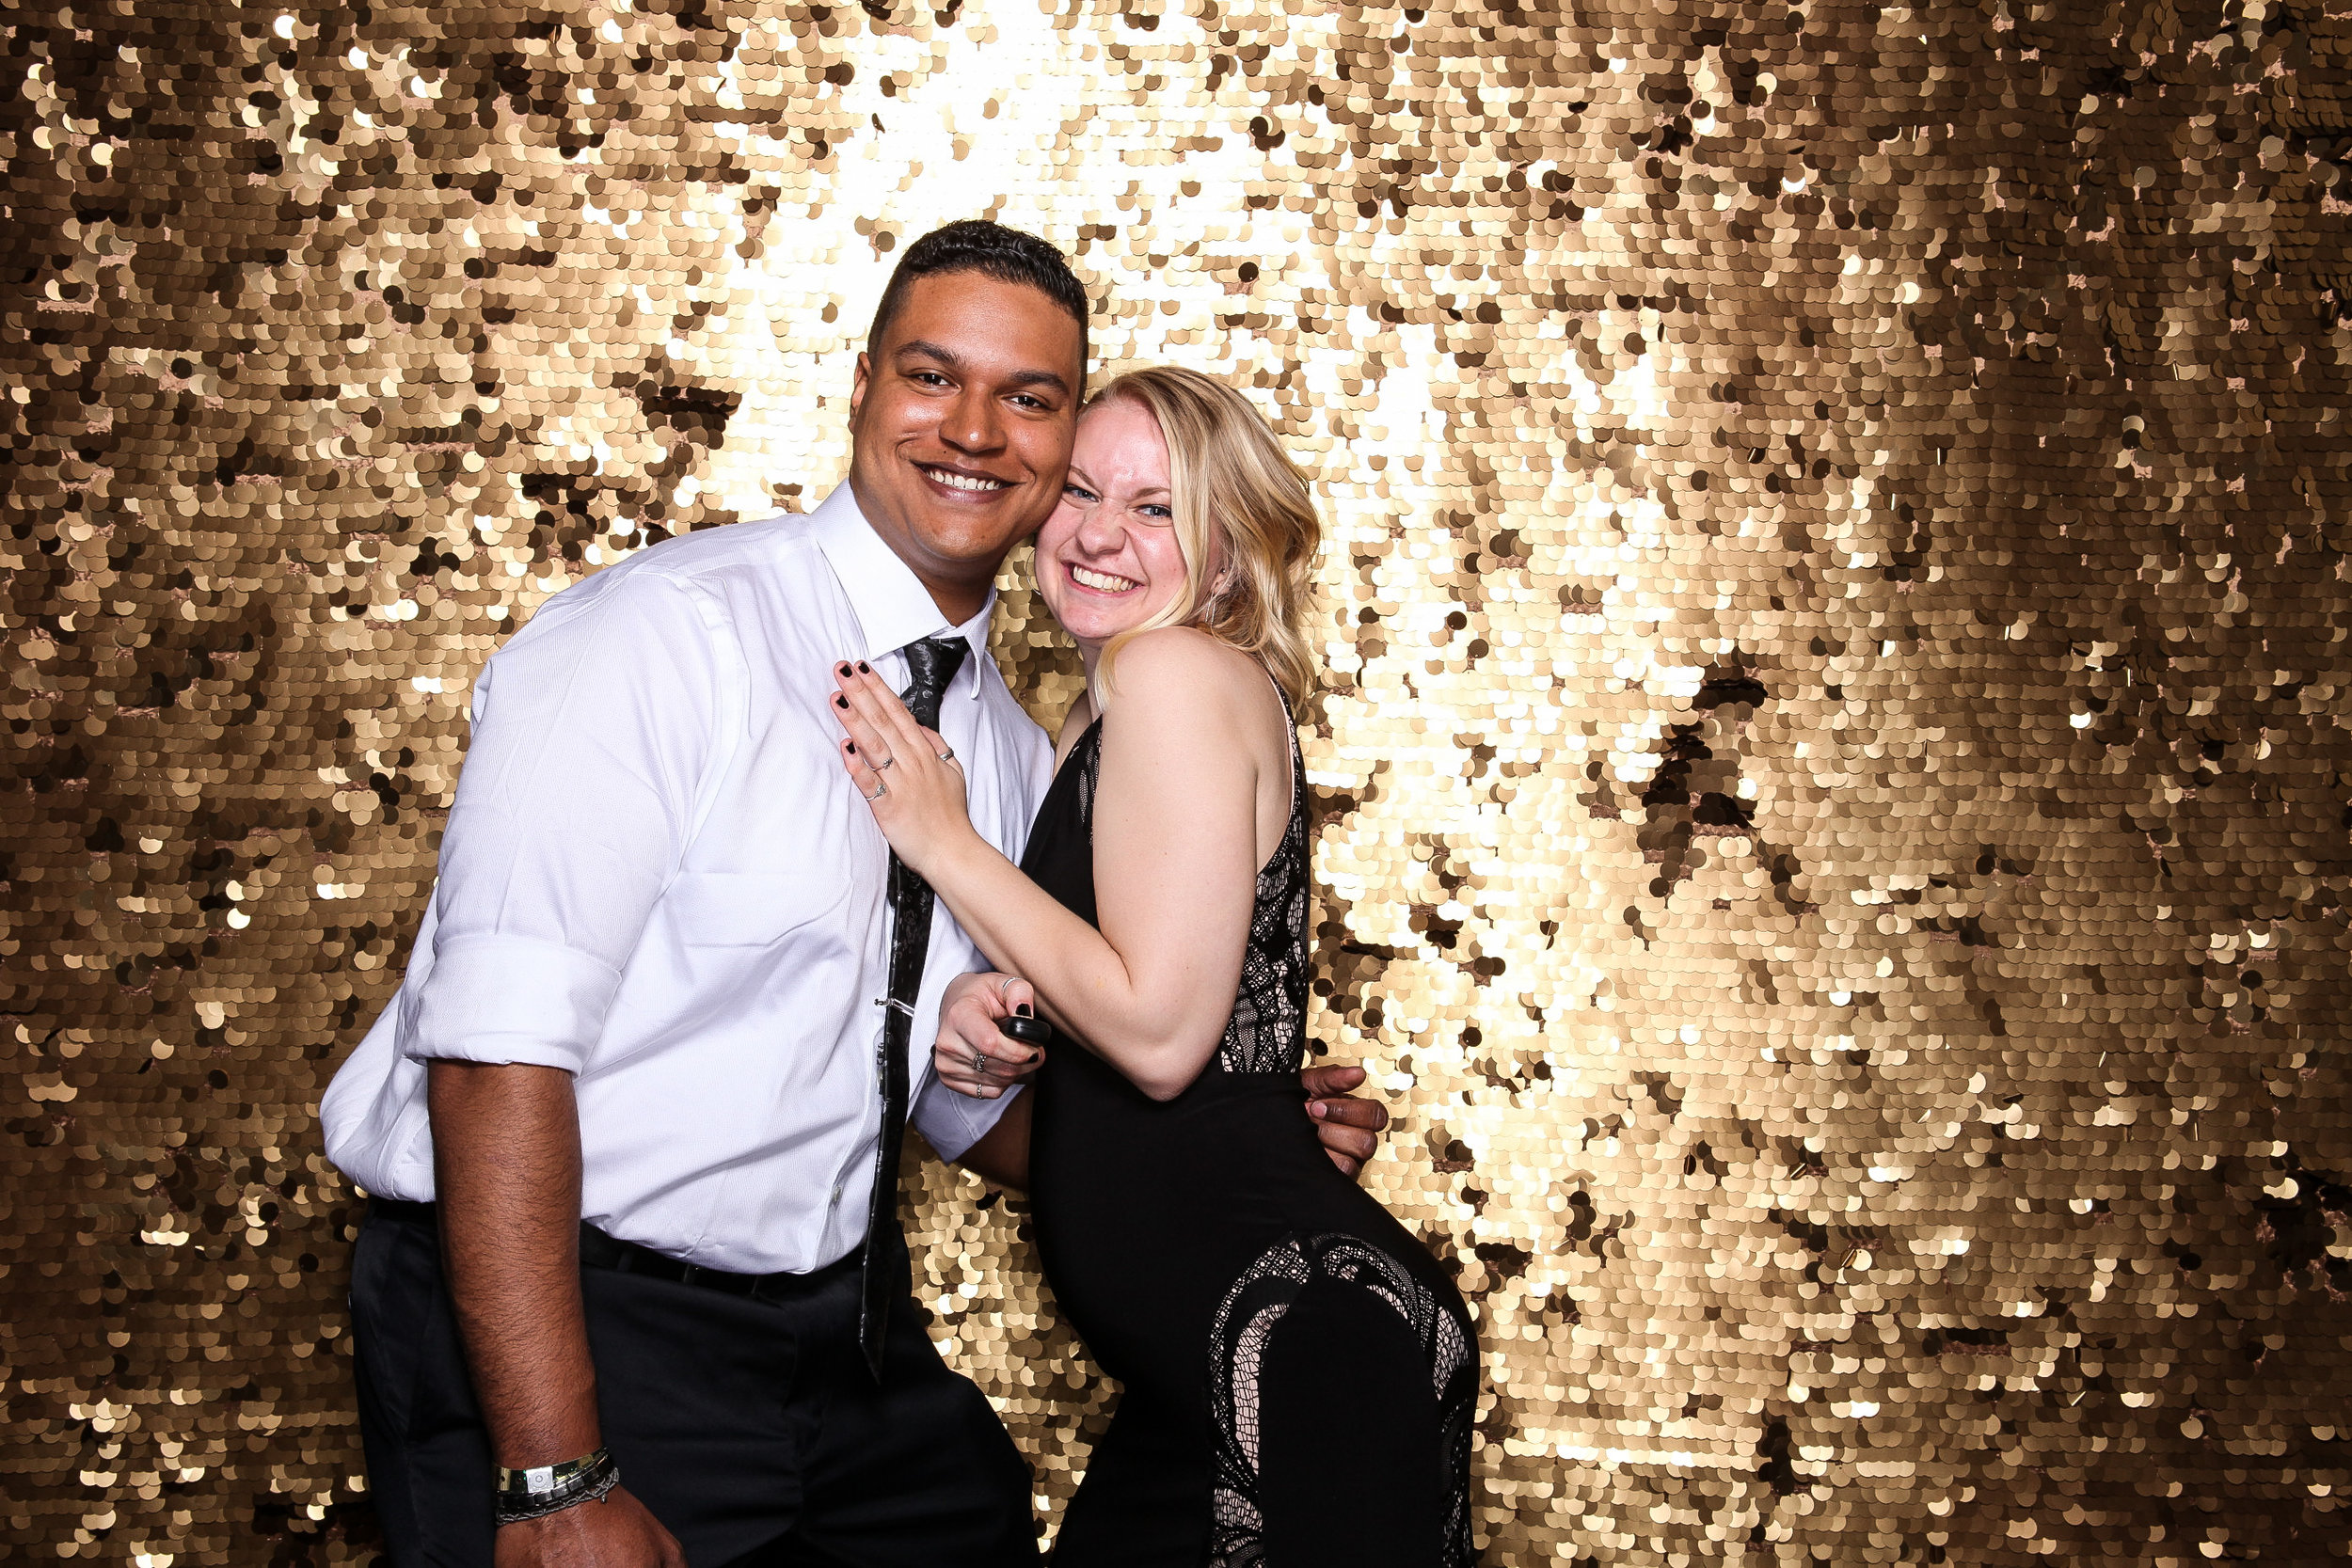 20190503_Adelphi_Senior_Formal-226.jpg